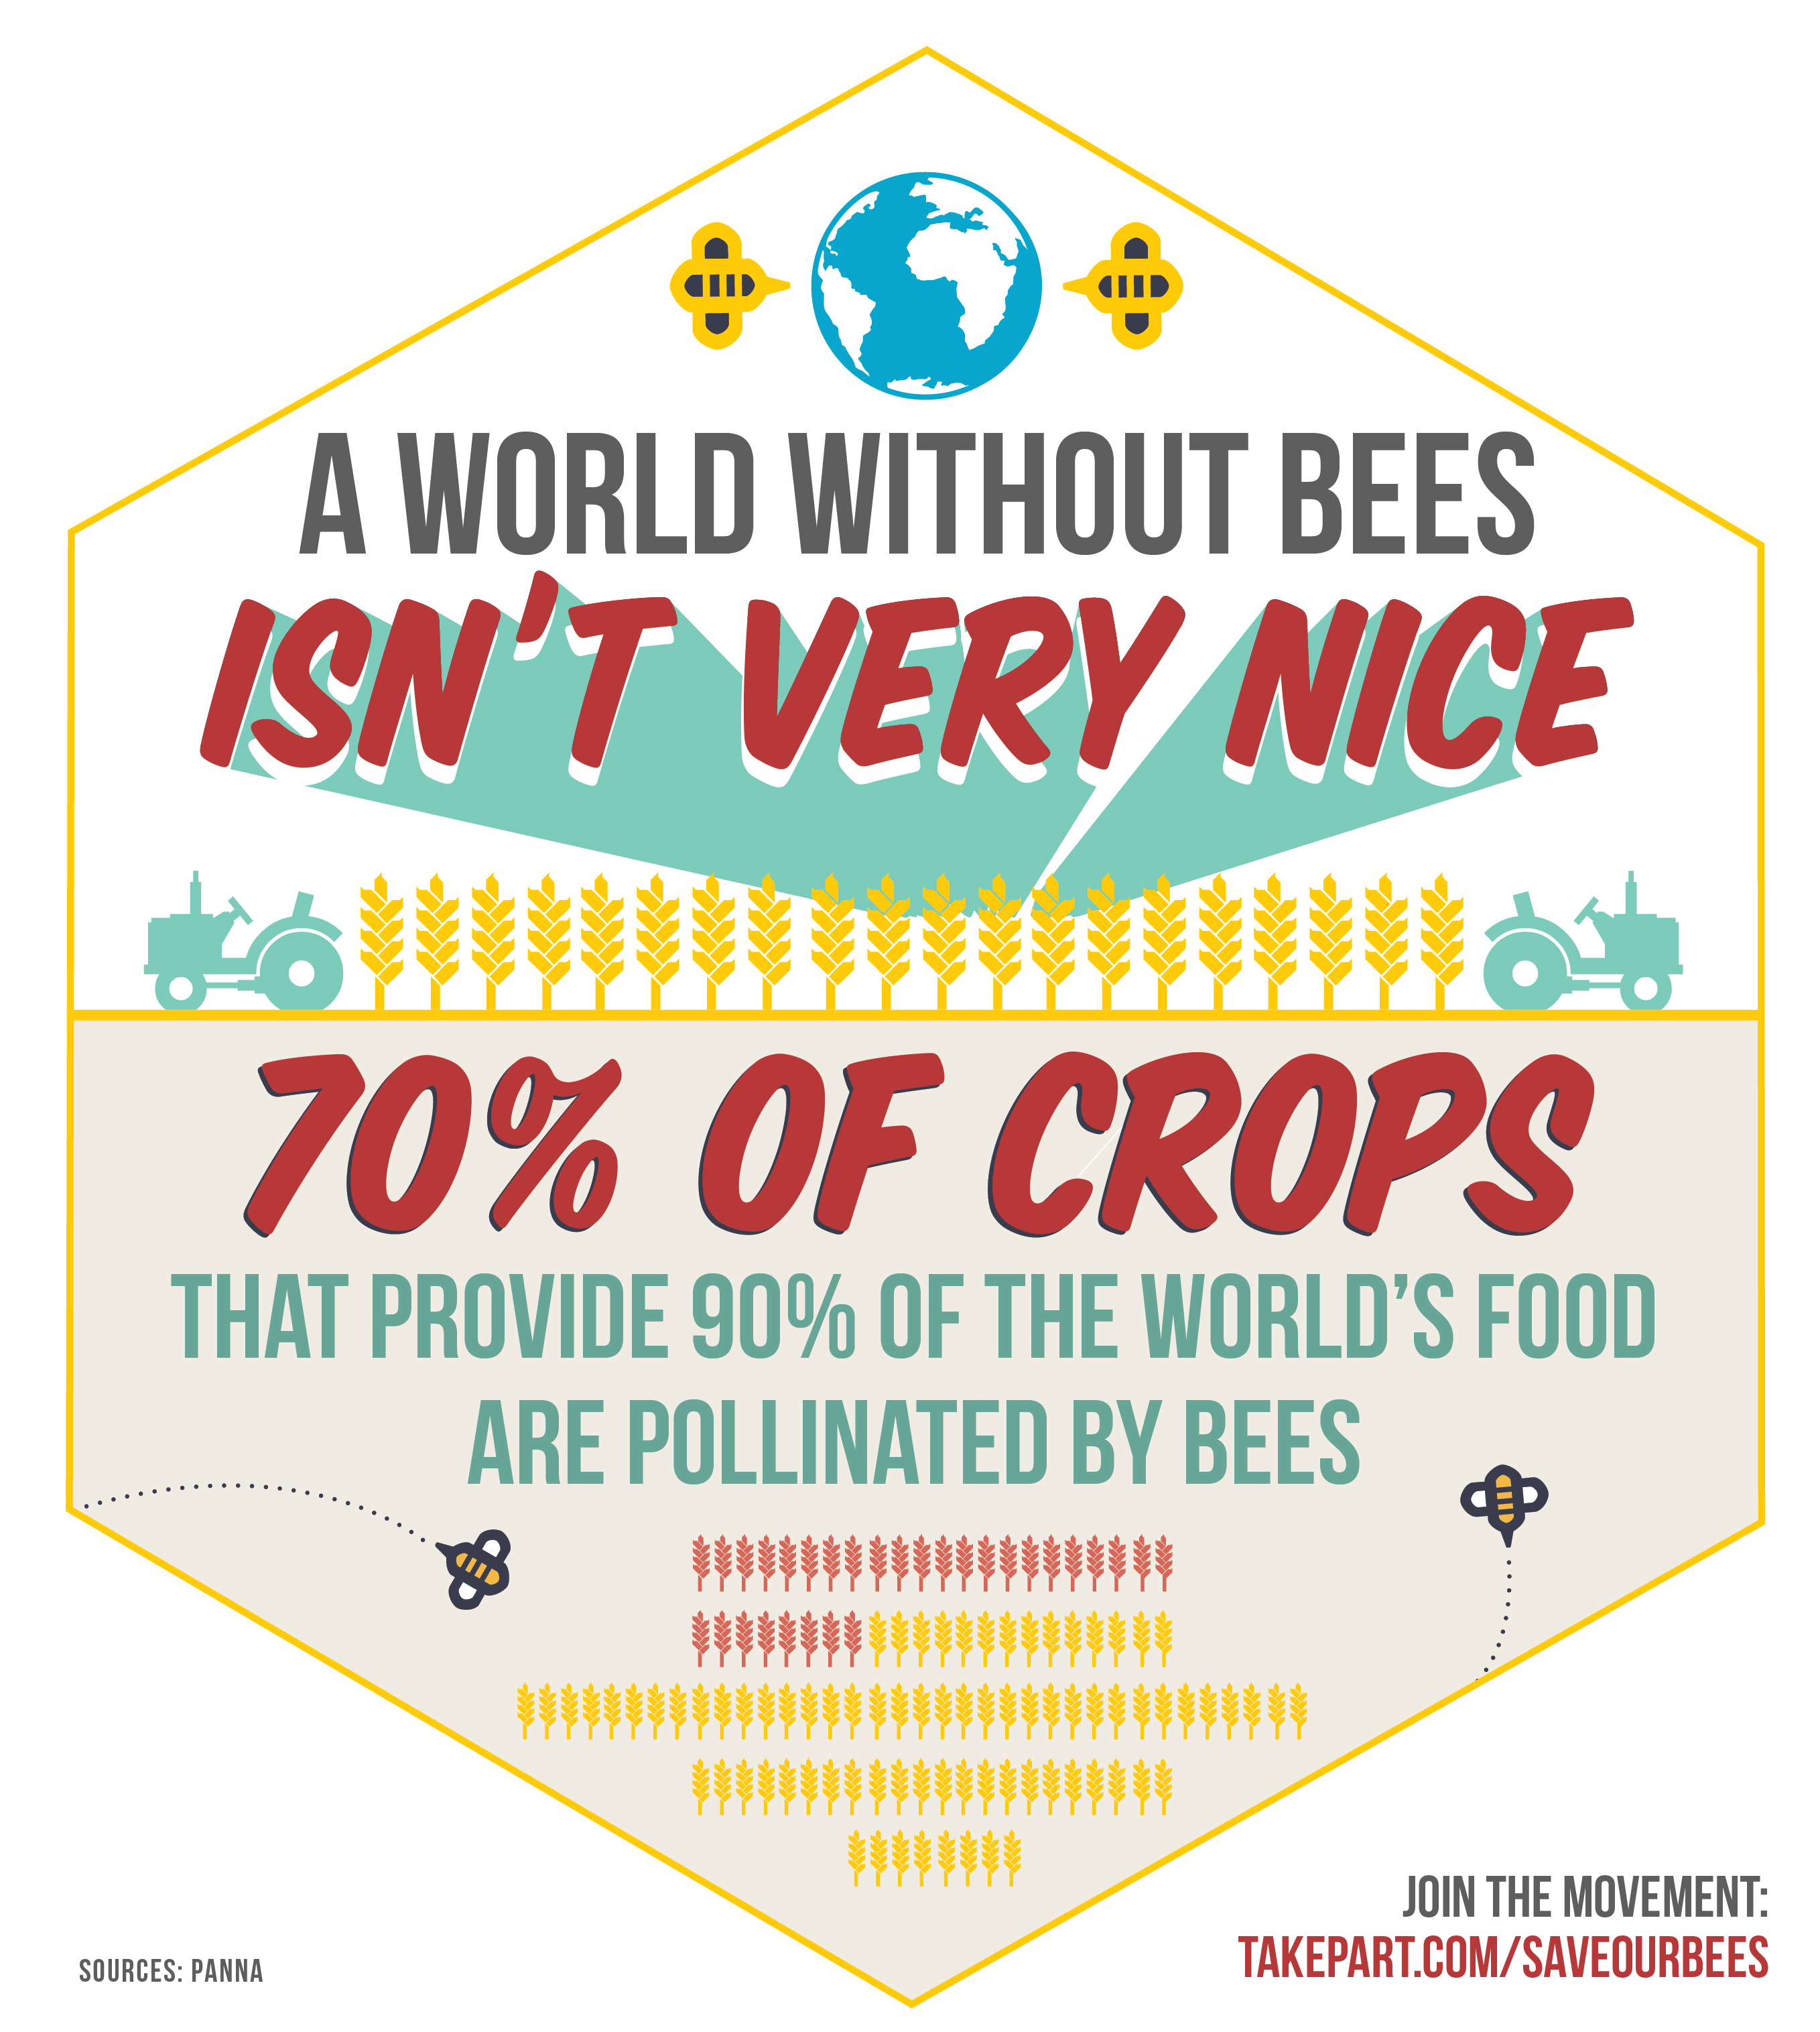 World without bees, no good.